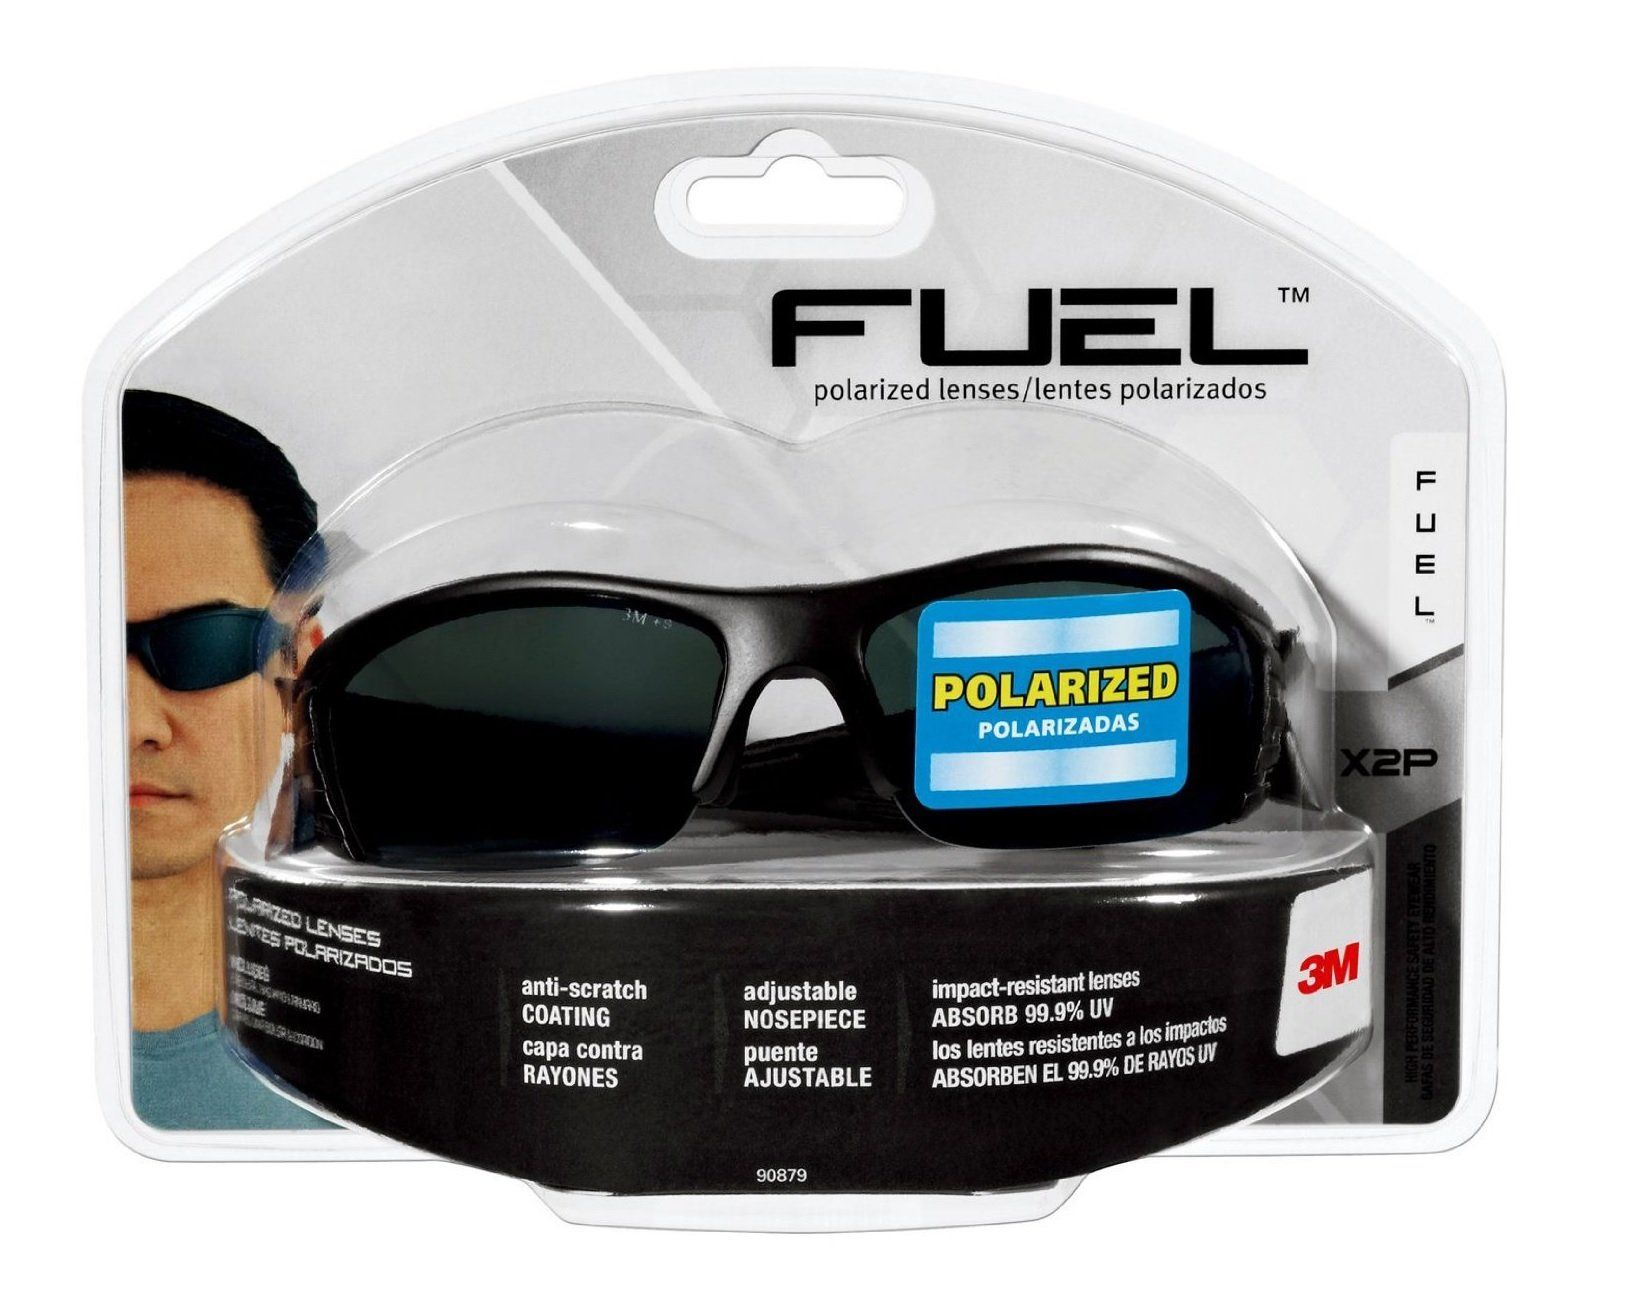 3M 9087980025 Fuel X2P Polarized Safety Glasses, Gray